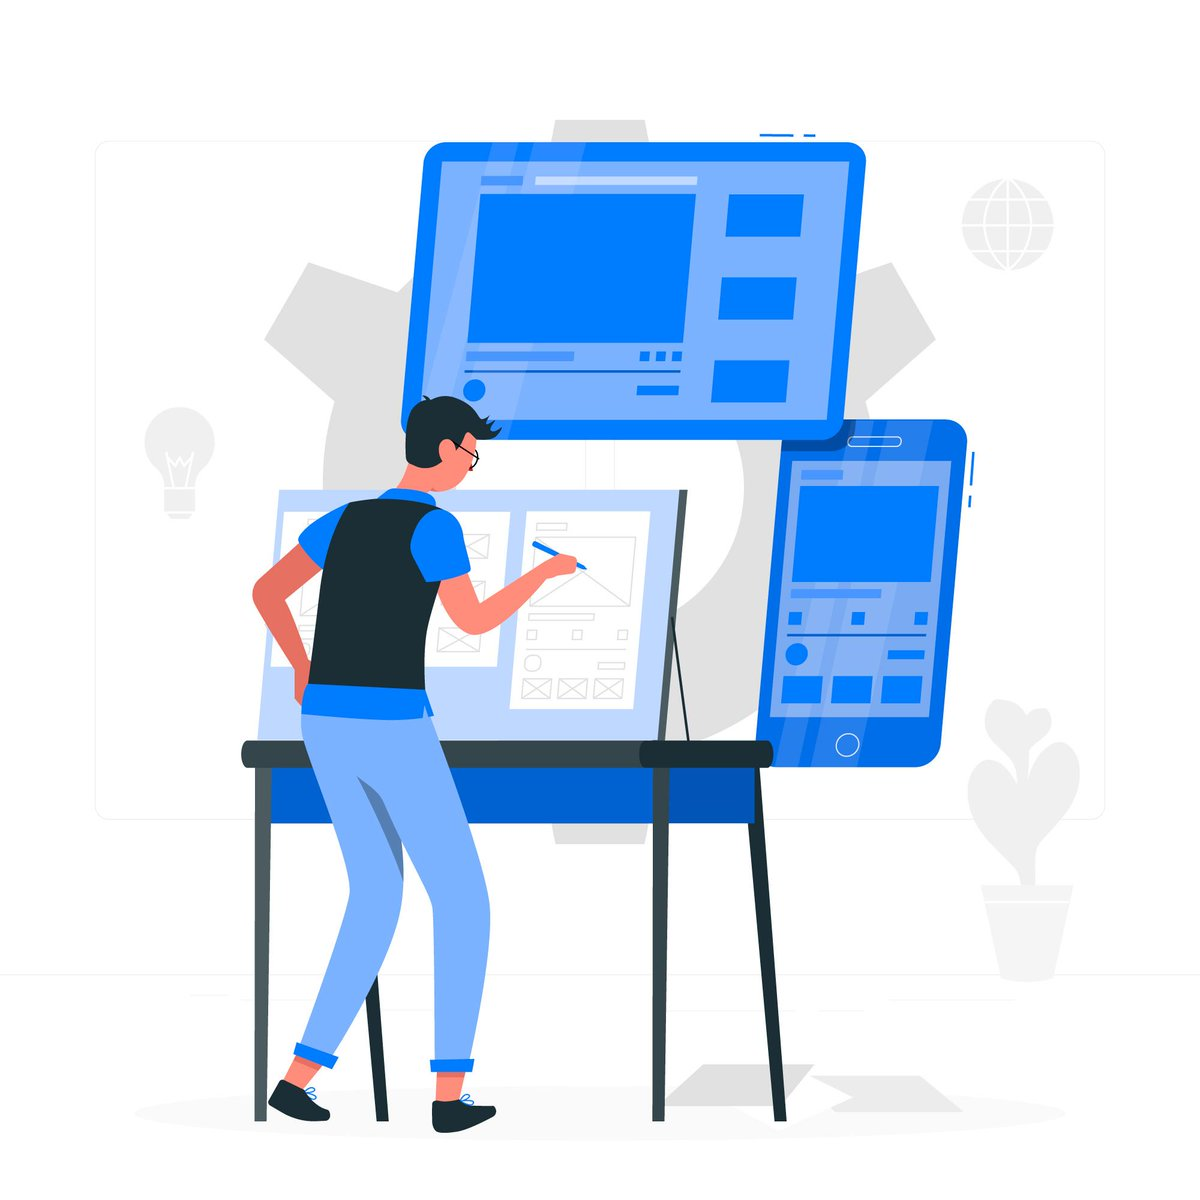 Are you UI/UX Designers and confused between which Prototyping Tools to choose? Here are the 10 Best Prototyping Tools For UI/UX Designers - https://bit.ly/3cgrfiY  #uidesign #uxdesign #prototyping #designers pic.twitter.com/wMqLY2v77H